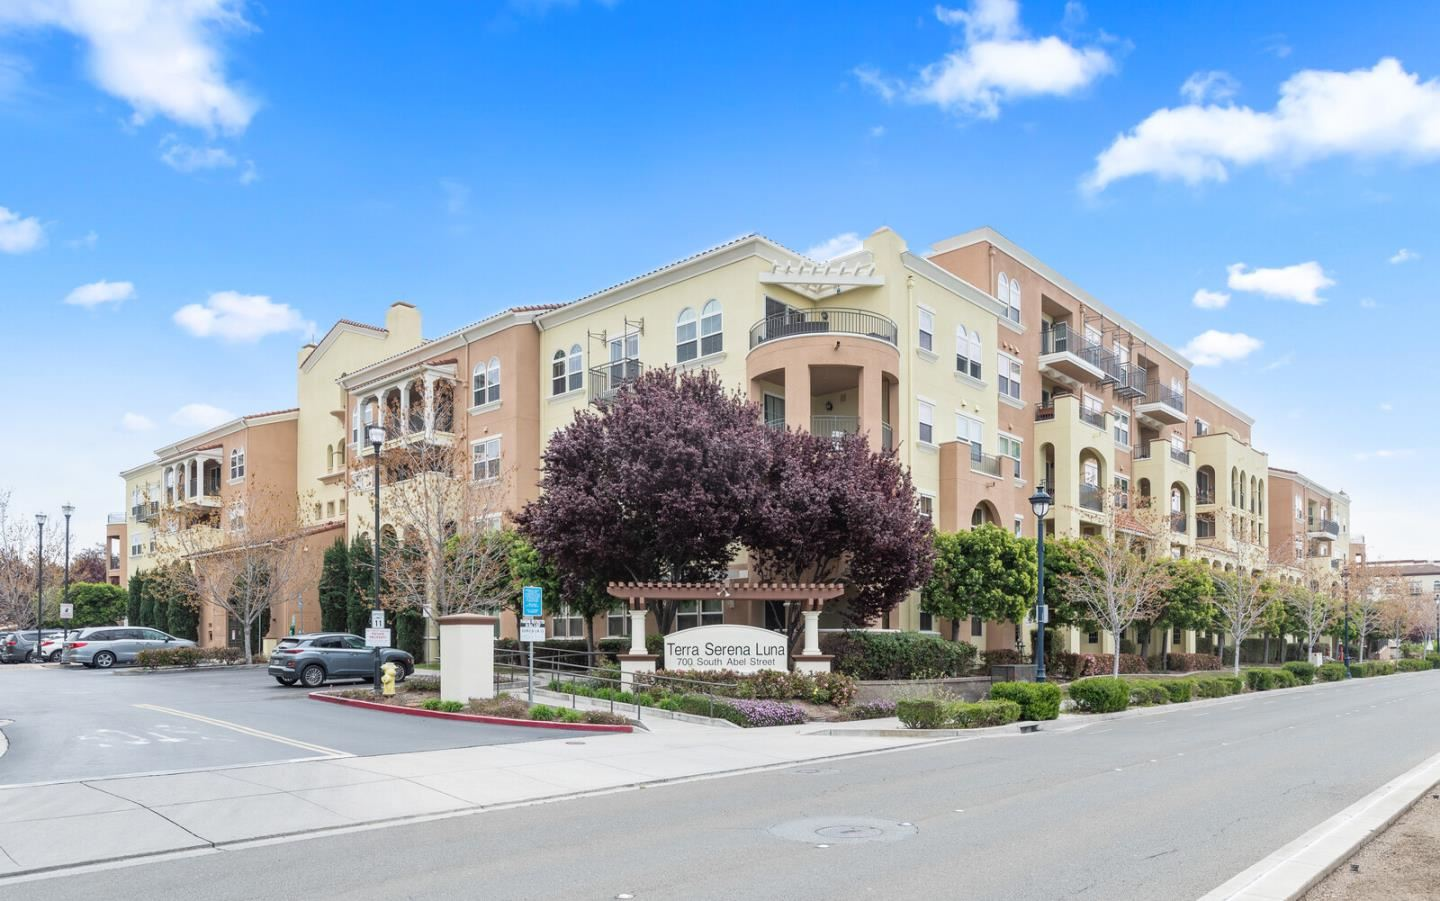 Photo for 700 S Abel ST 213 #213, MILPITAS, CA 95035 (MLS # ML81837563)